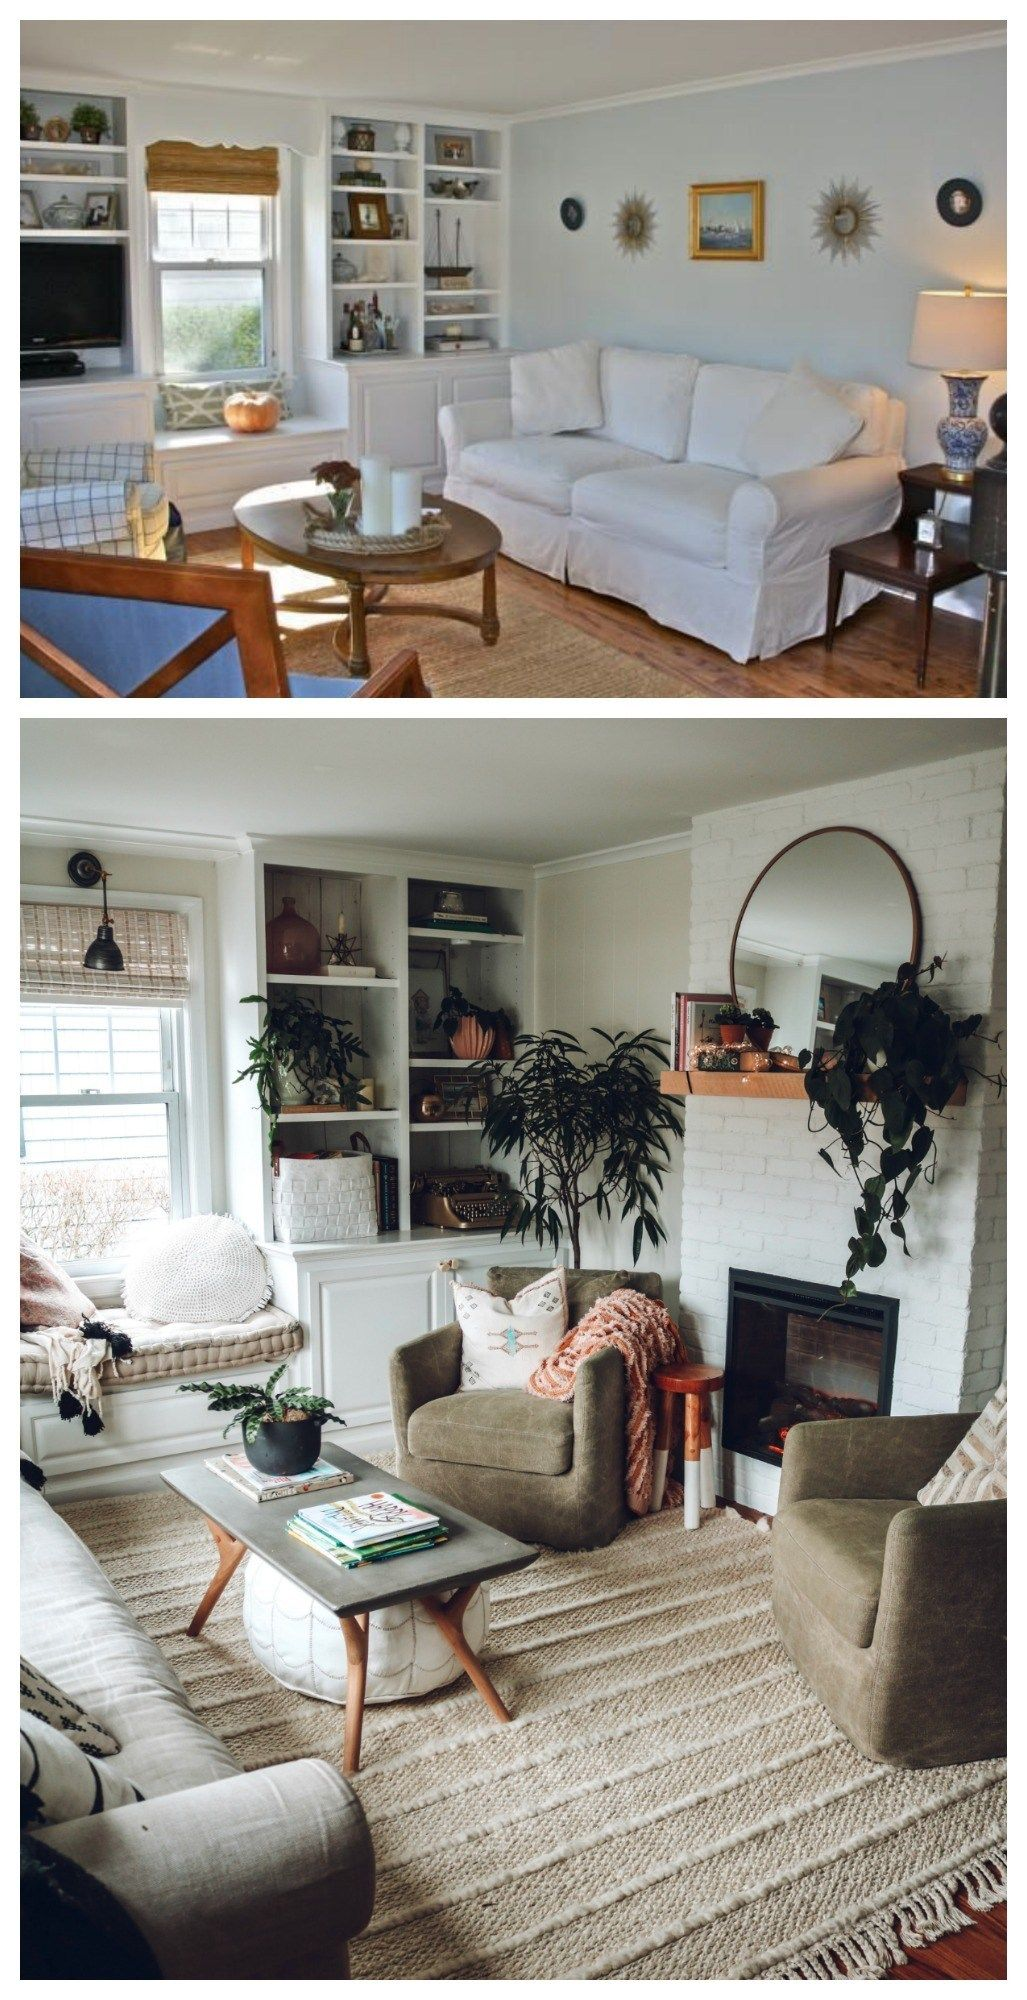 Complete Before And After S 1100 Sq Ft Cape Floor Plan And Future Nesting With Grace Living Room Remodel Small Space Living Room Small Space Living